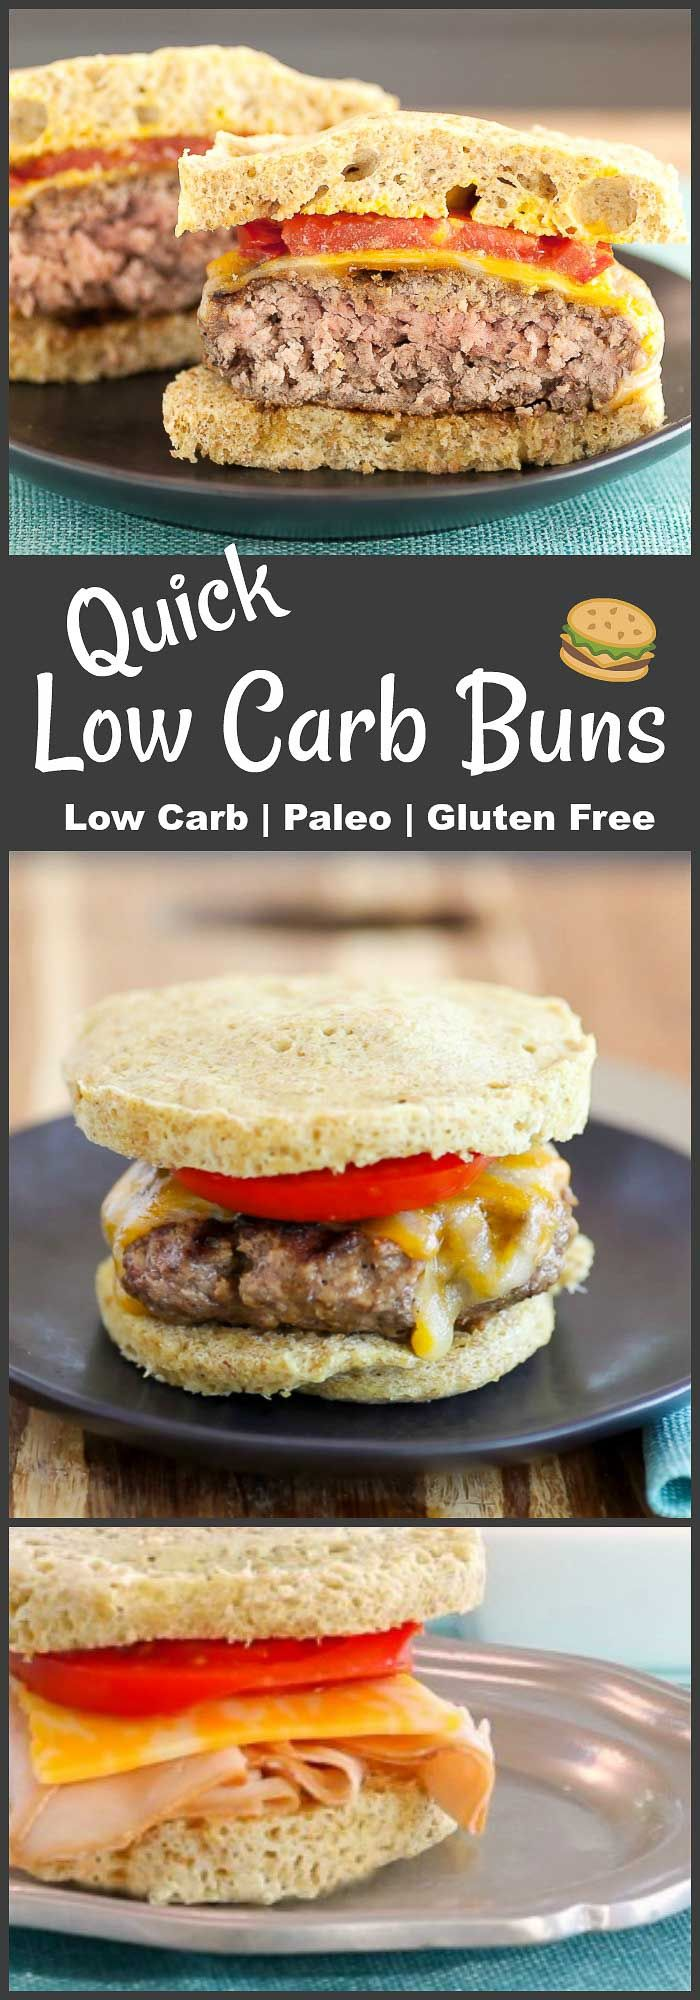 Quick Low Carb Buns- Keto & Paleo